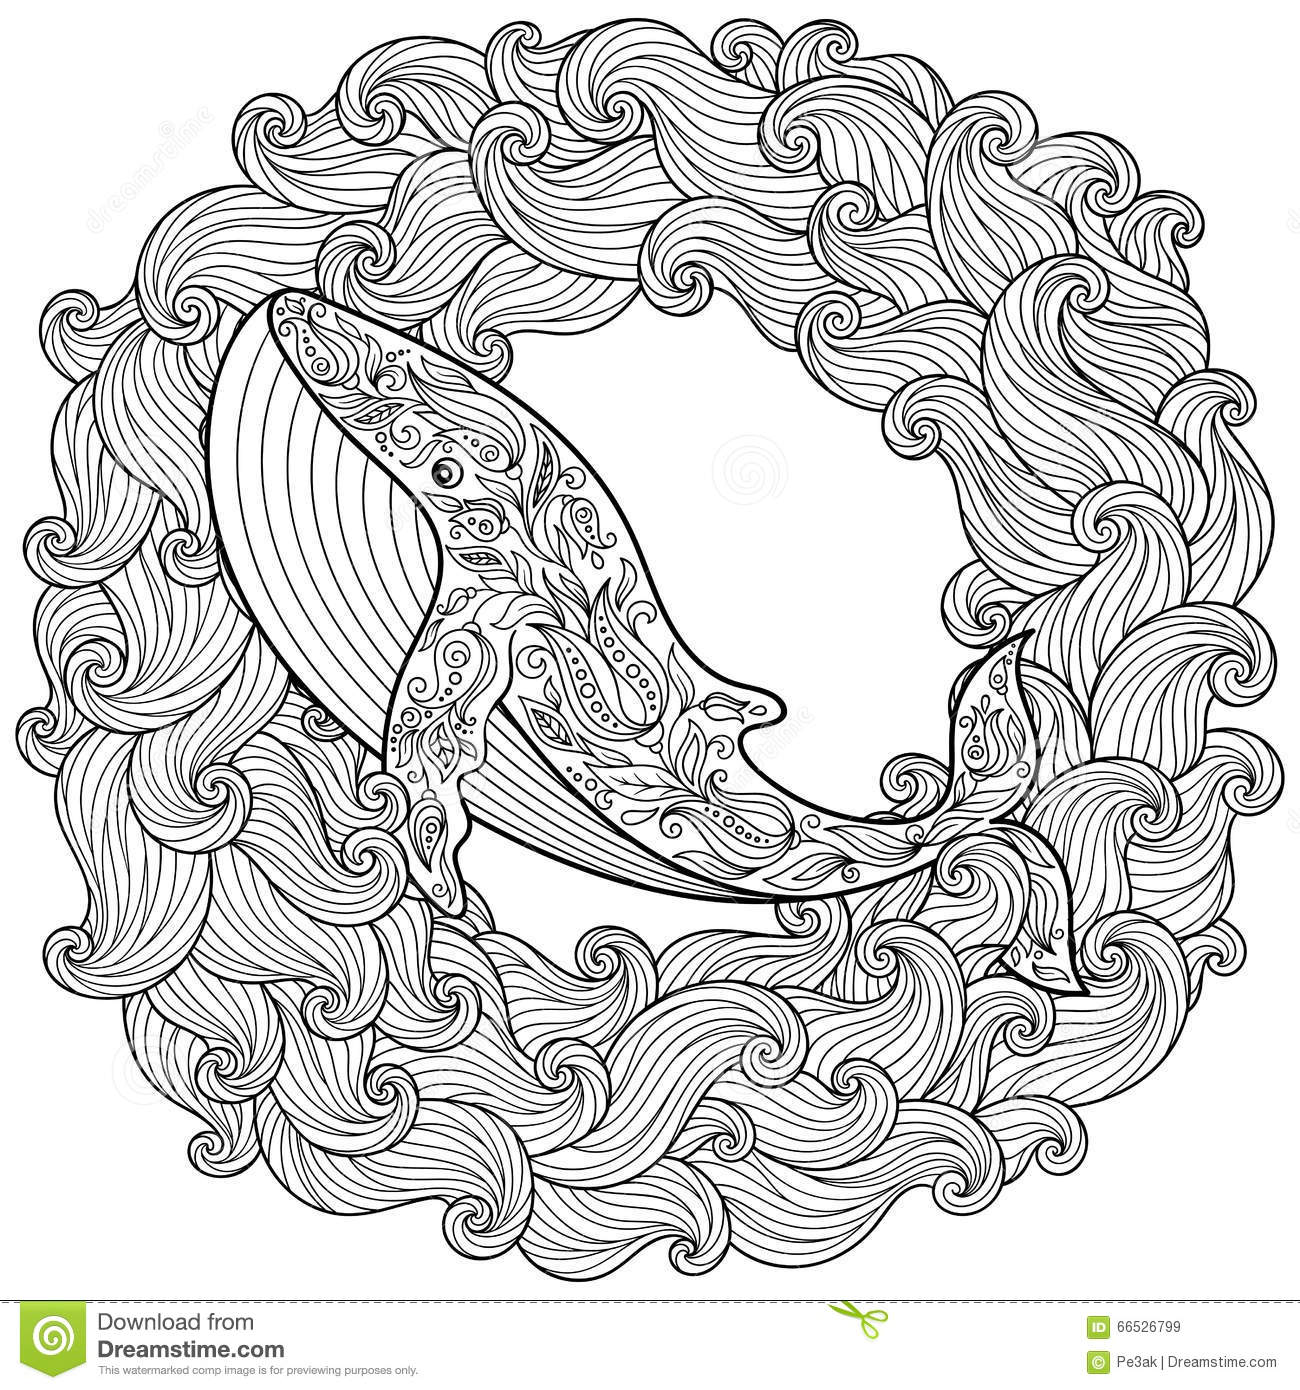 Vector Zentangle Whale Print For Adult Coloring Page Hand Drawn